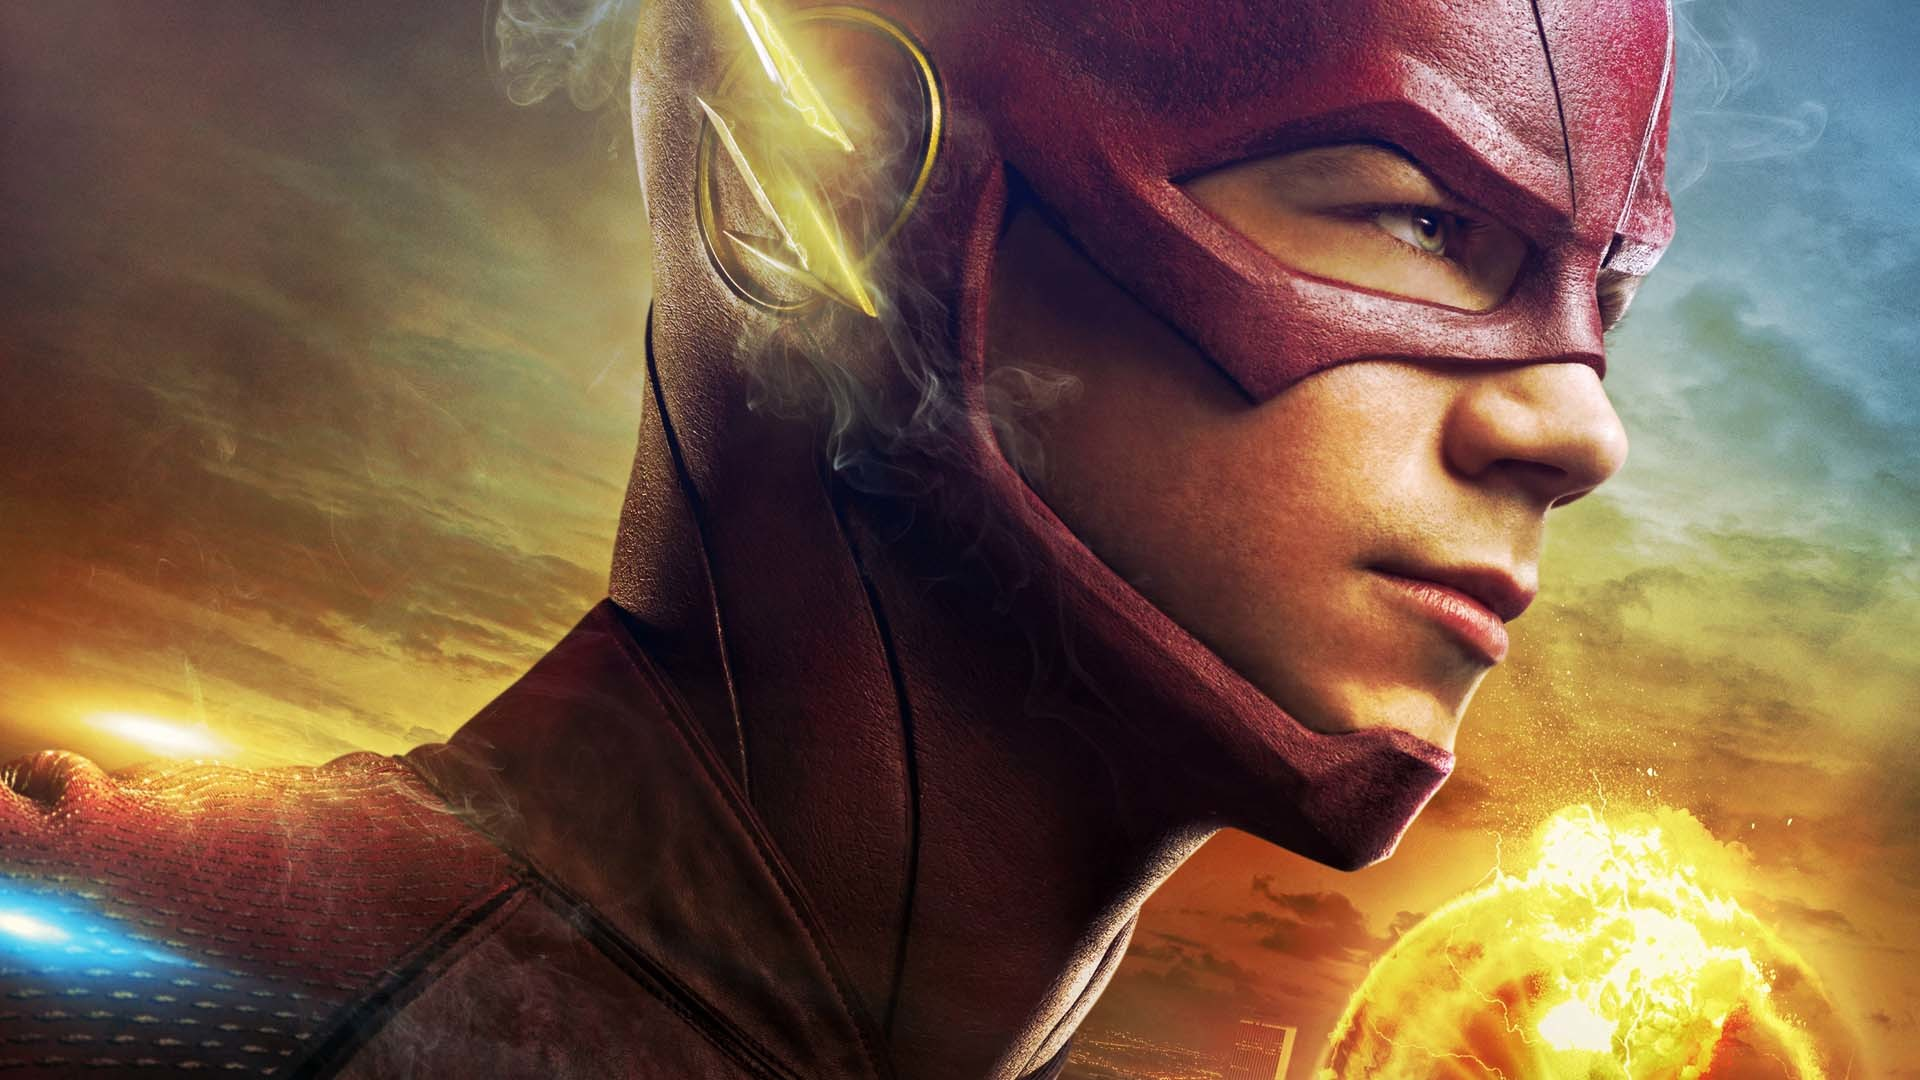 The Major Theme Of The Flash Season 2: How A Superhero Deals With Fame